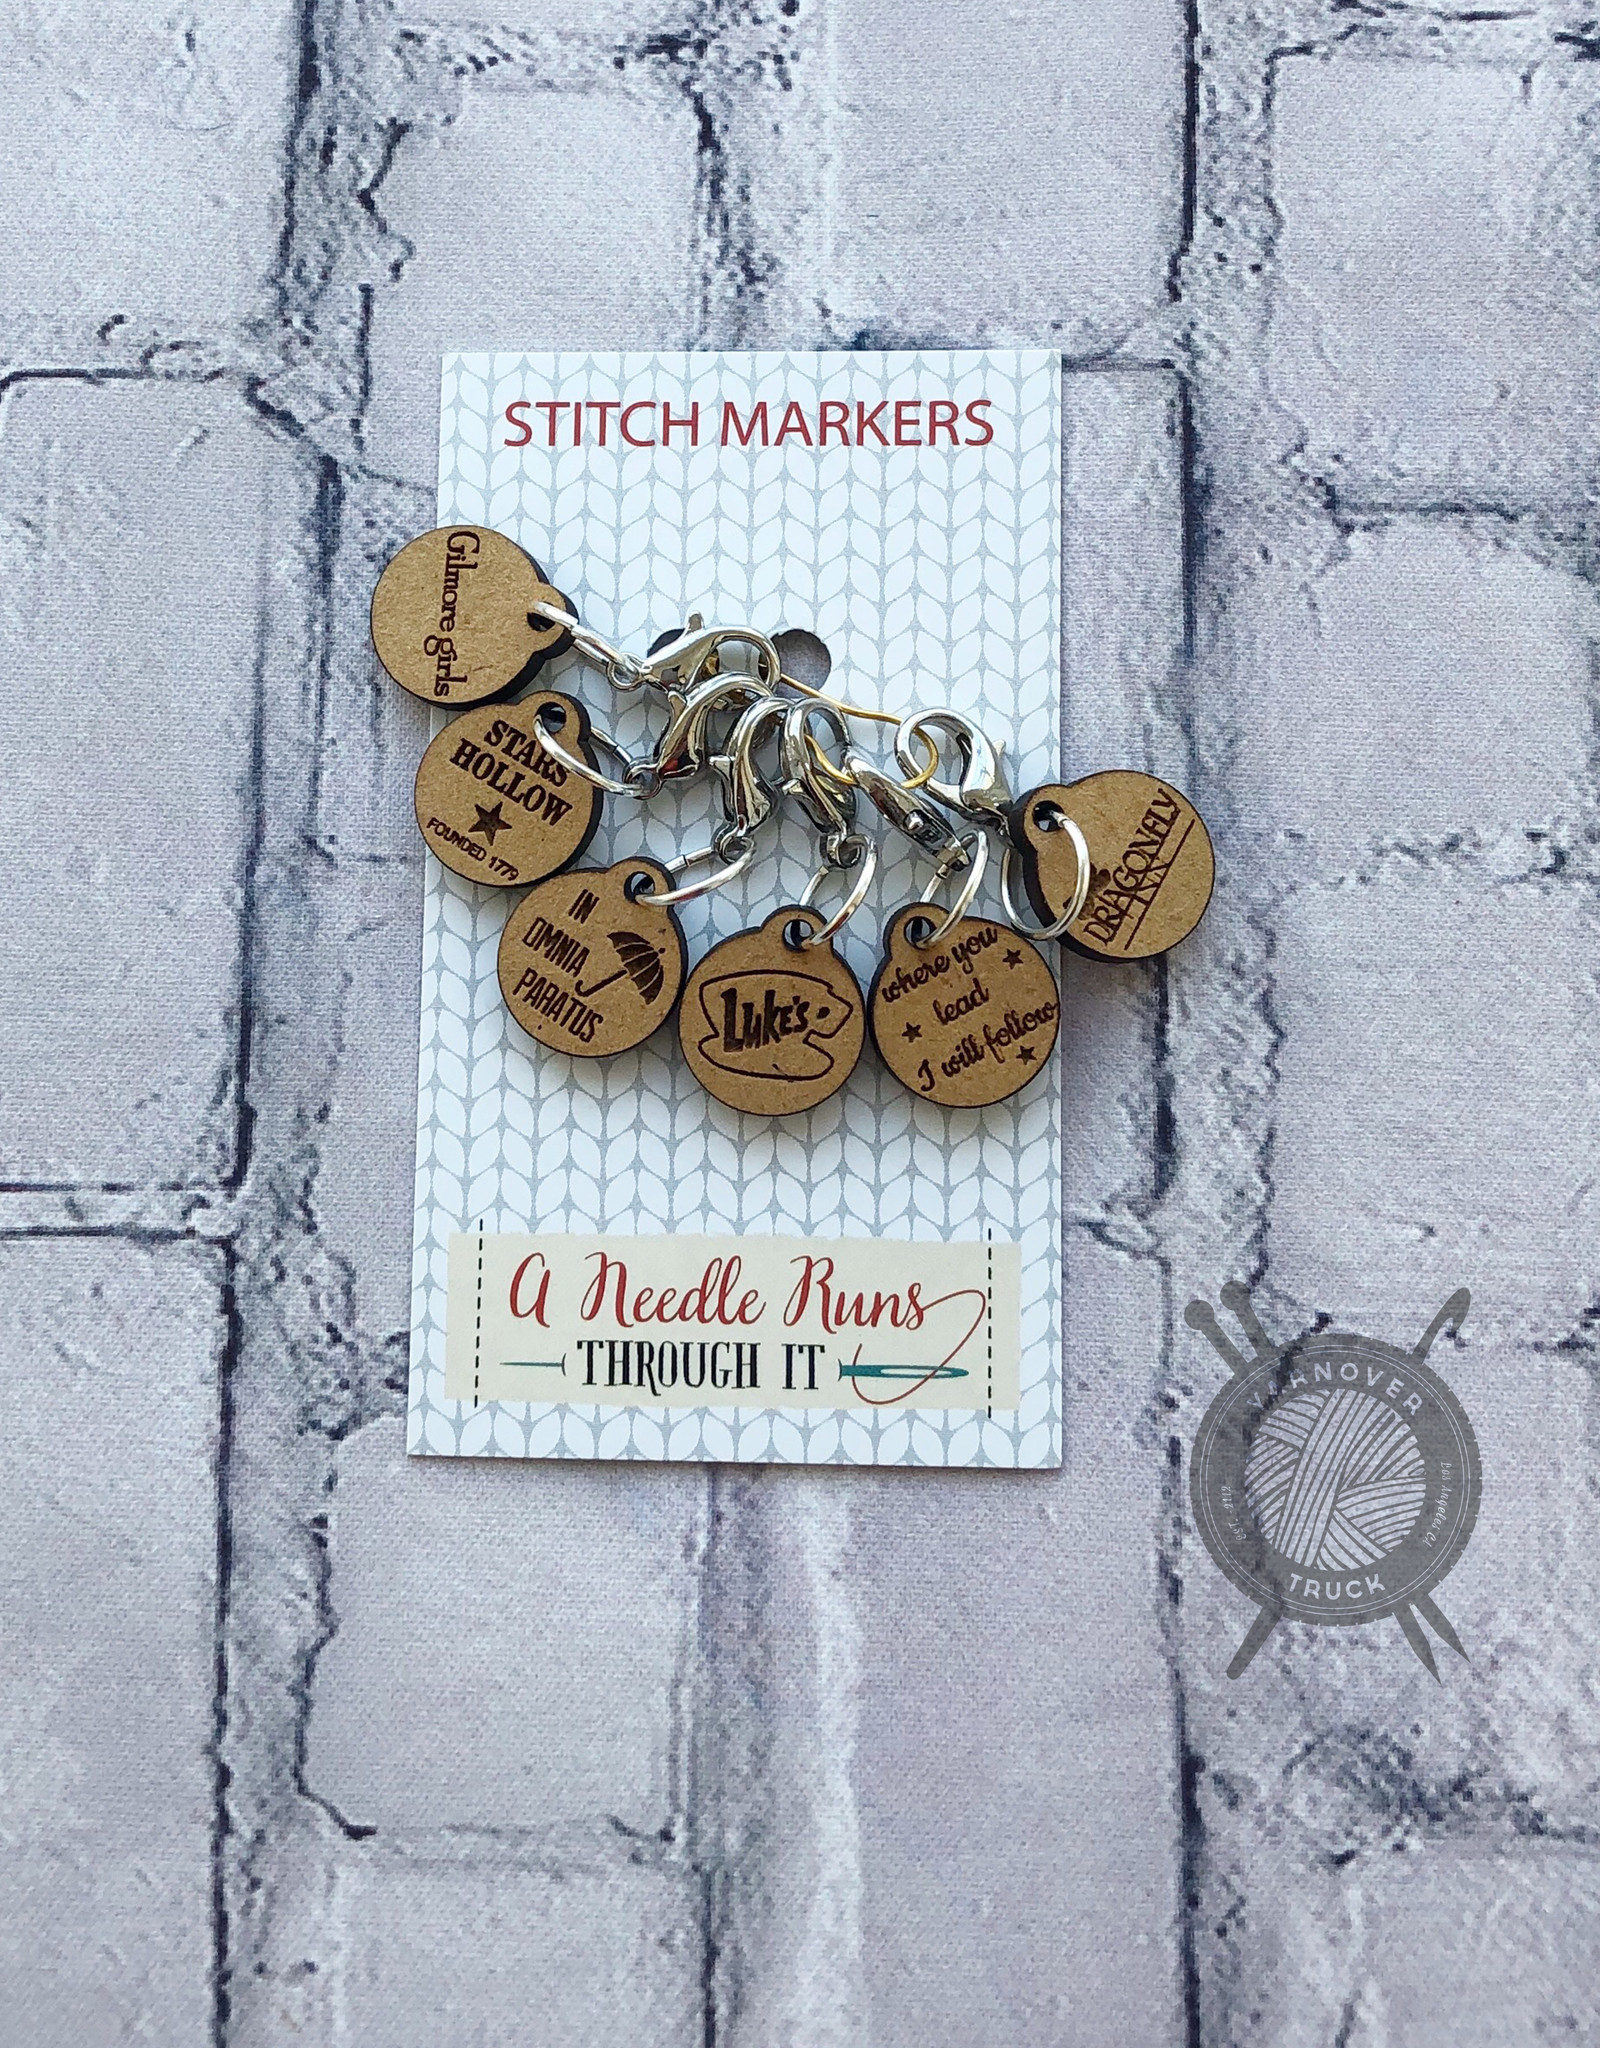 A Needle Runs Through It Gilmore Girls inspired Stitch Marker Set for Crochet